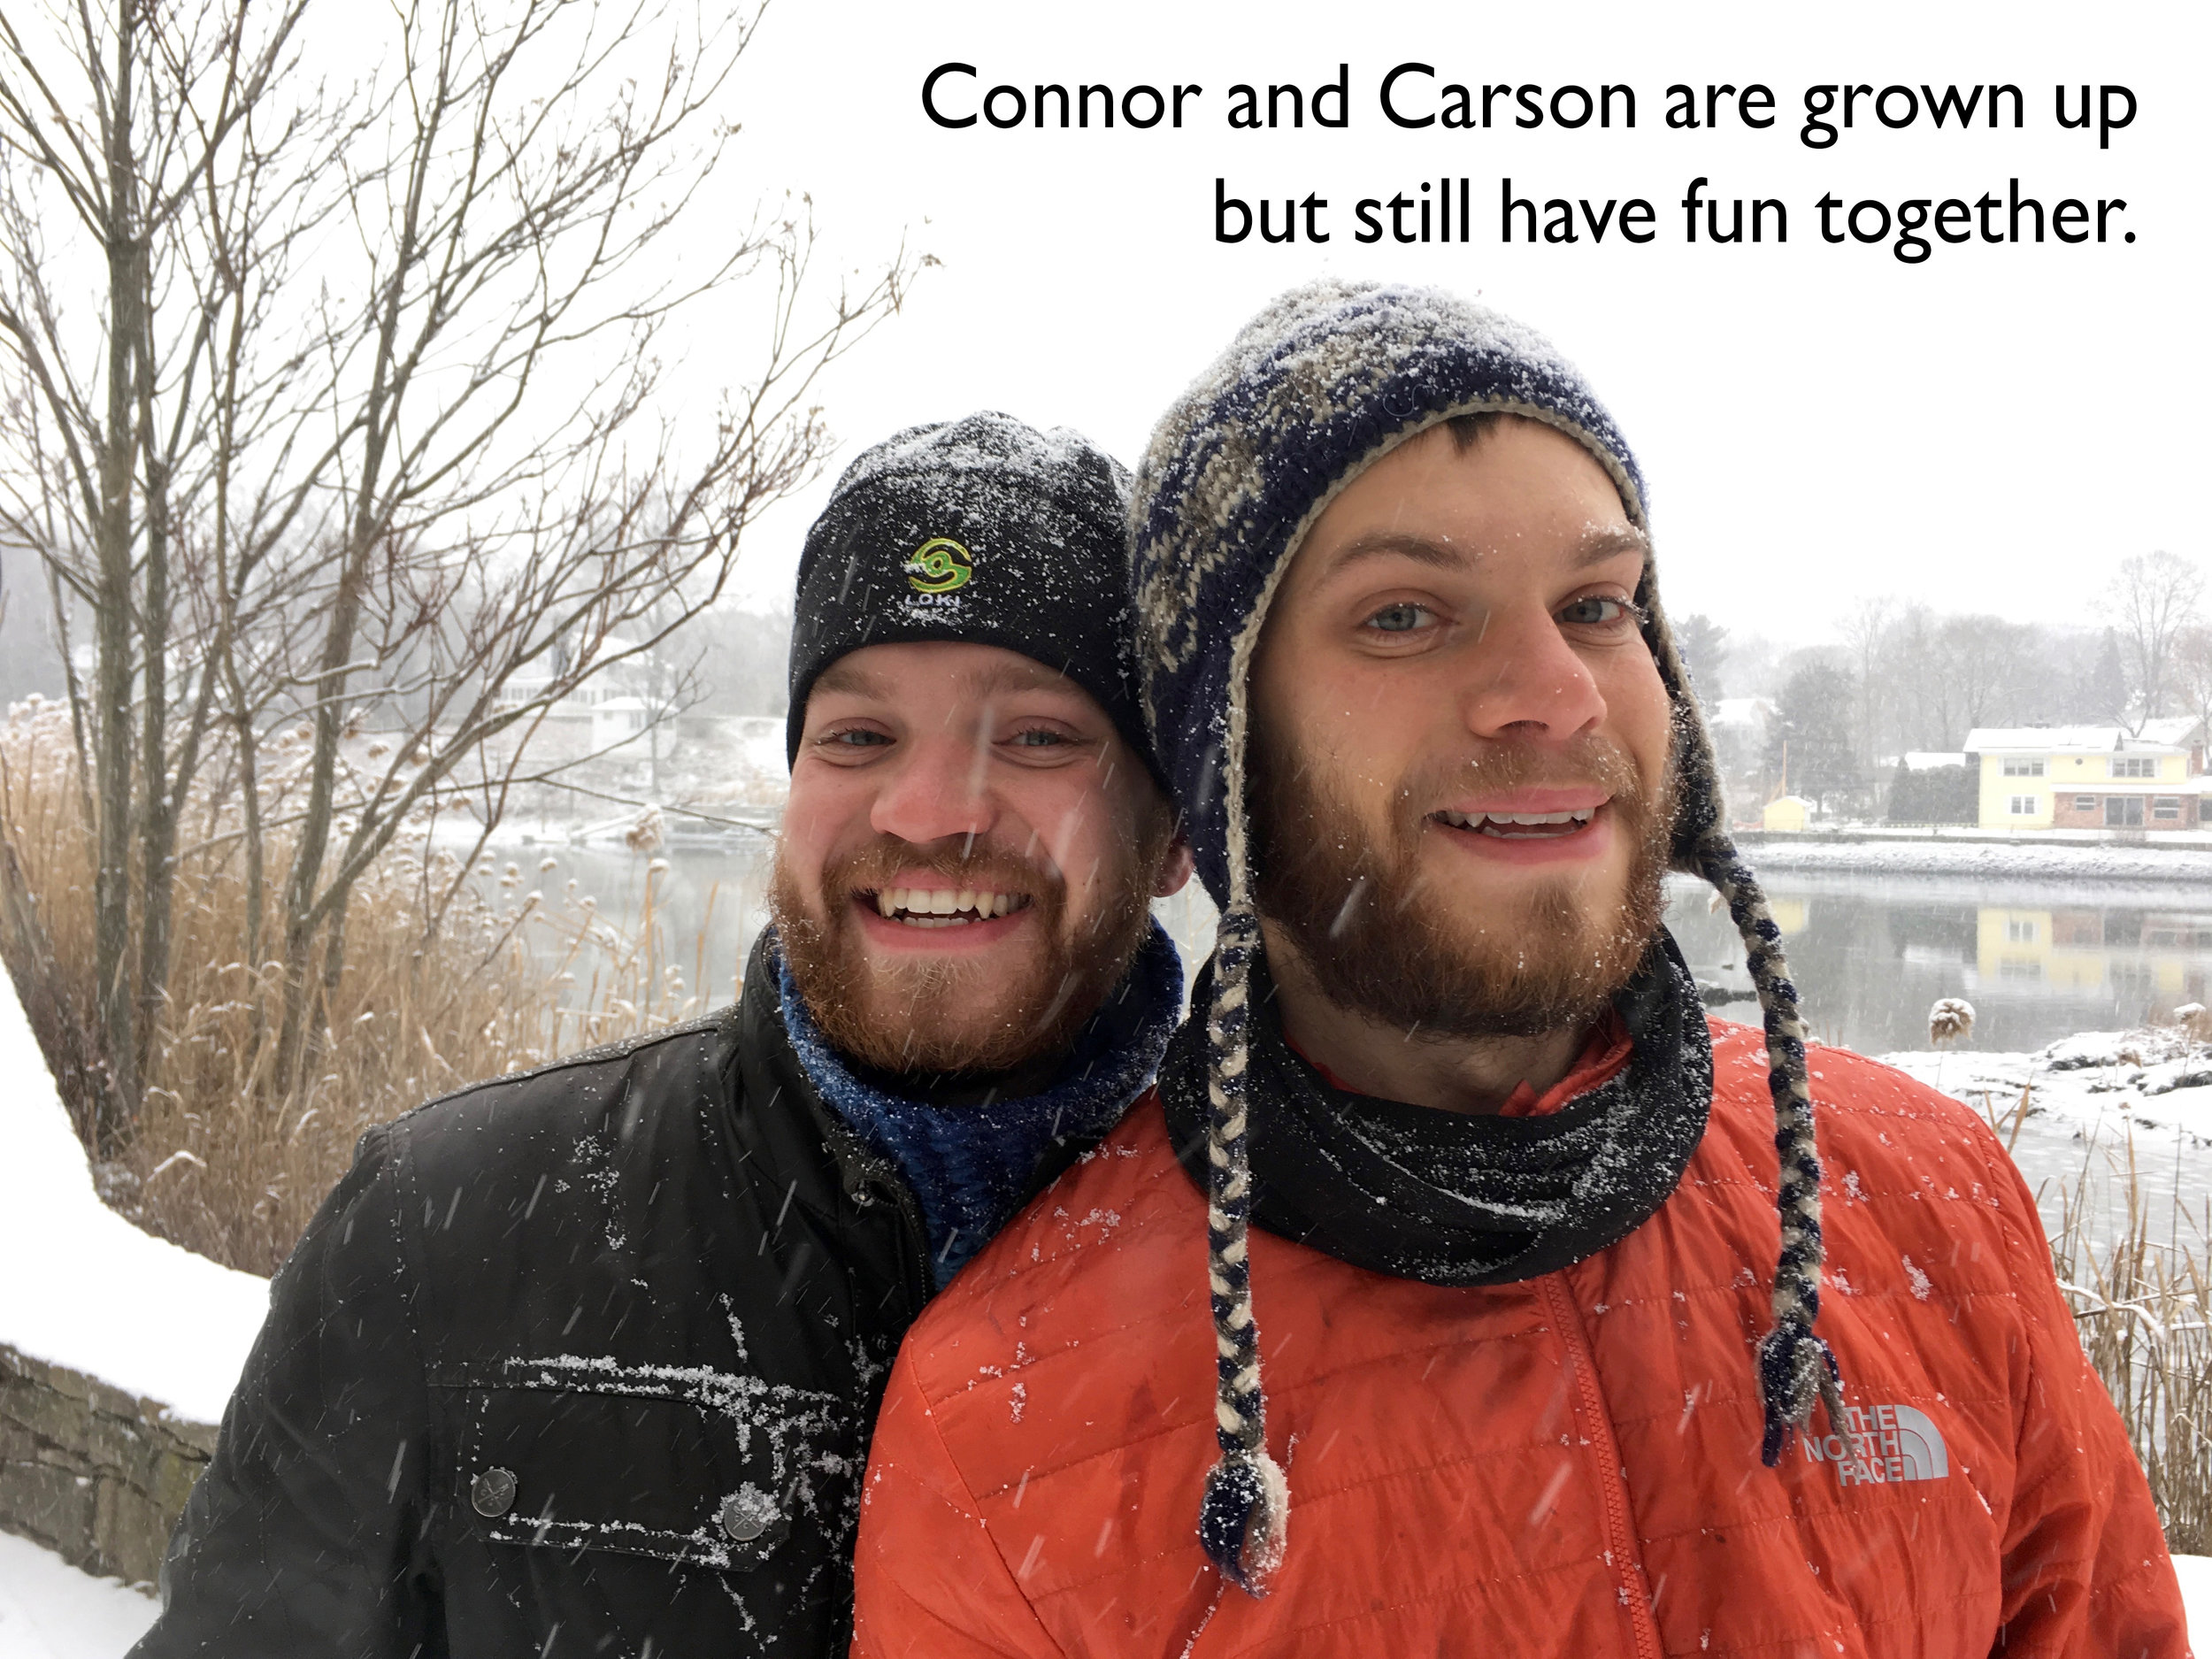 connor and carson.jpg